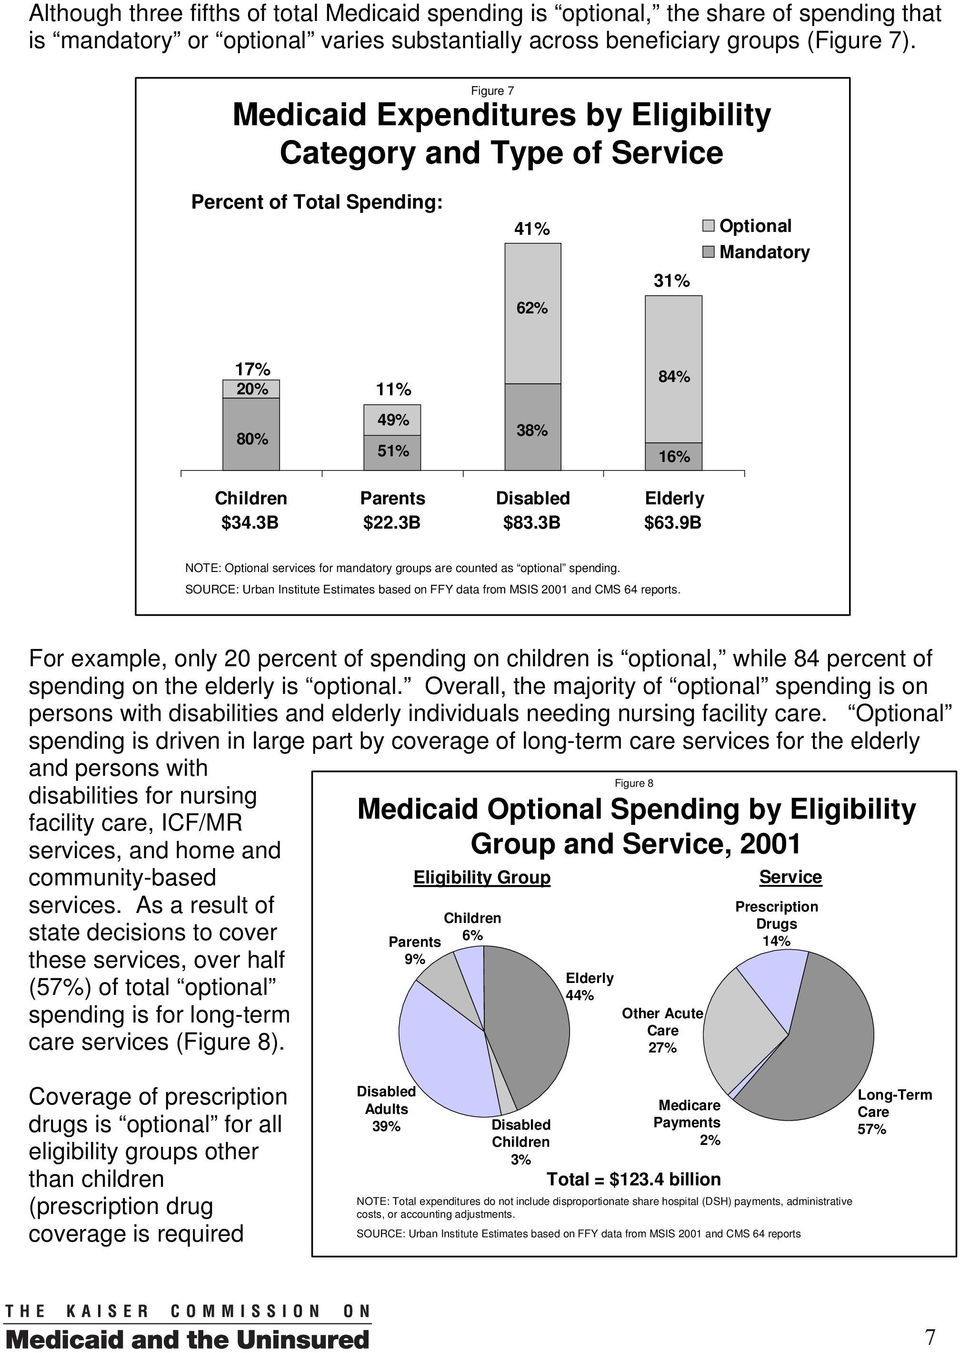 3B $22.3B $83.3B $63.9B NOTE: Optional services for mandatory groups are counted as optional spending. SOURCE: Urban Institute Estimates based on FFY data from MSIS 2001 and CMS 64 reports.